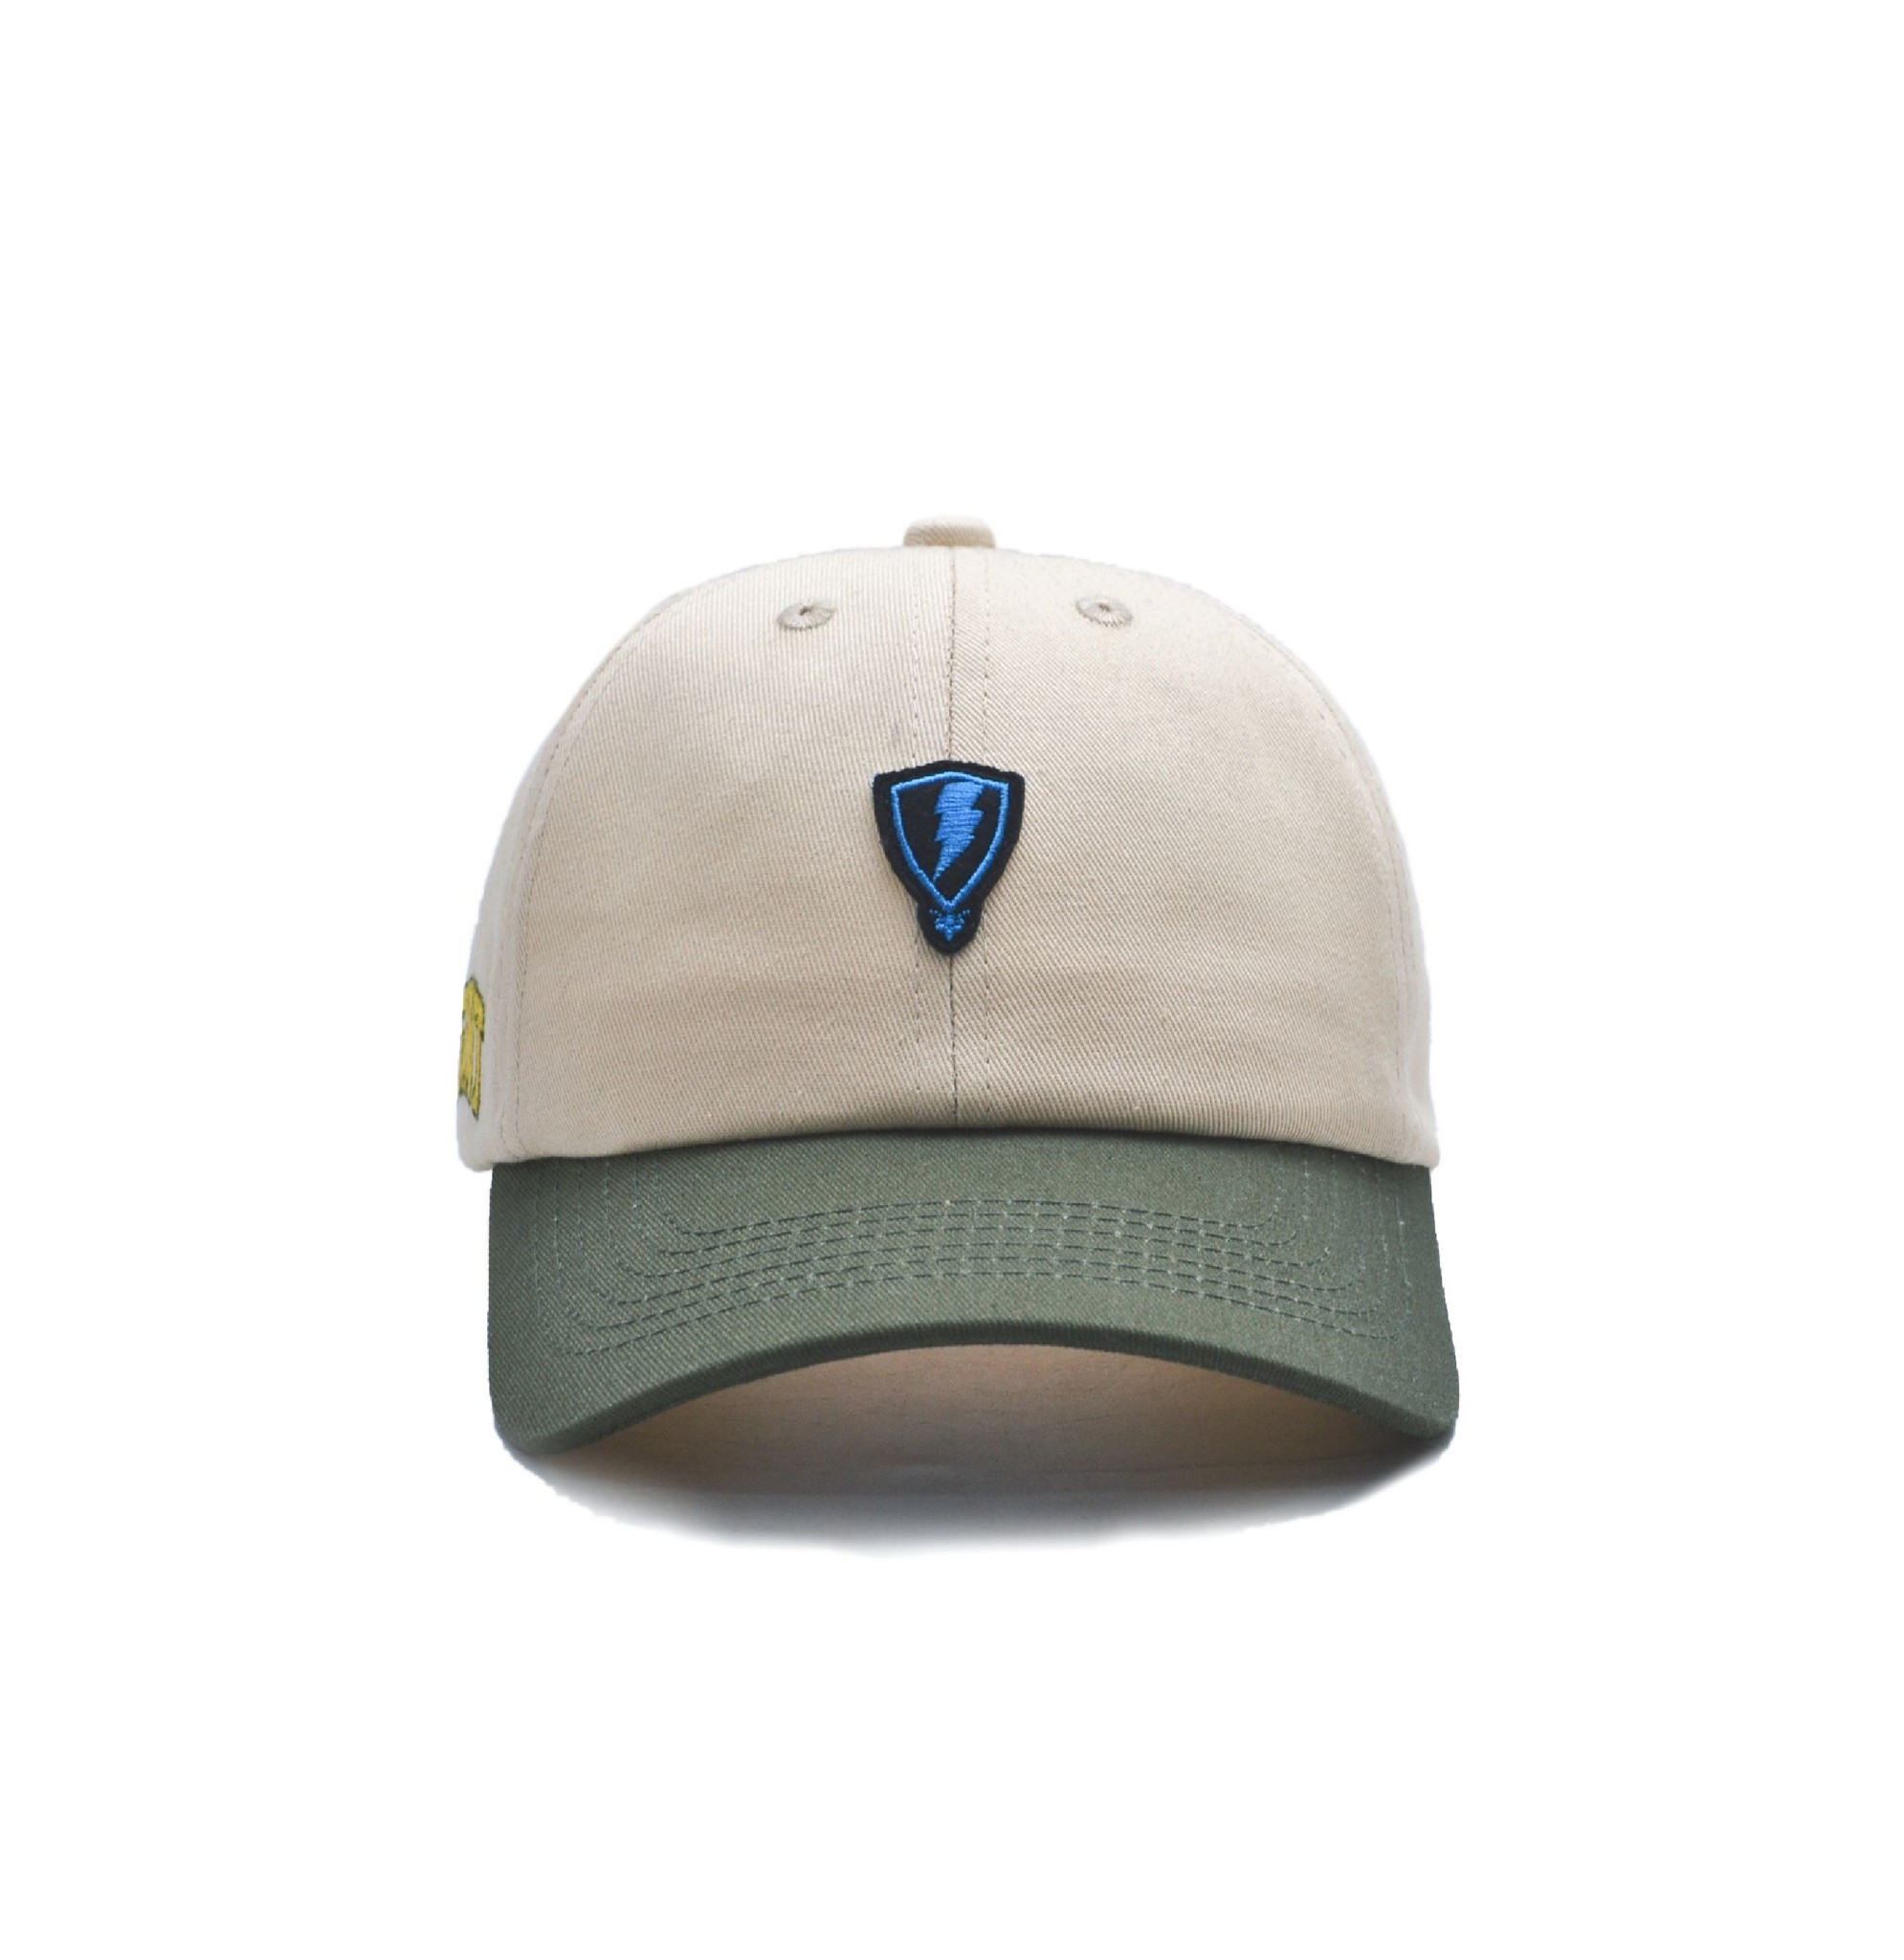 Jugrnaut Jugrnaut Shield Cap Tan